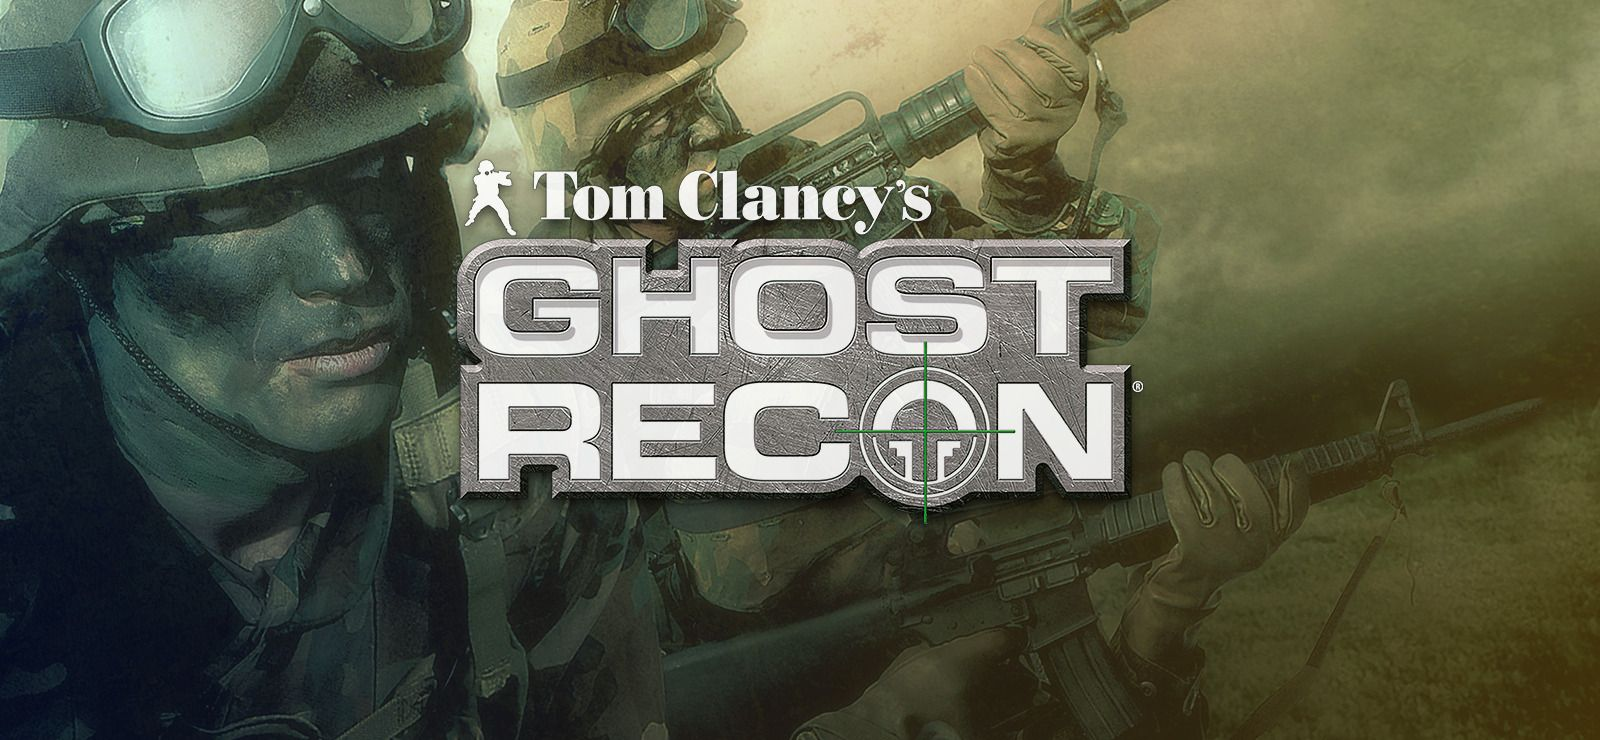 Tom Clancys Ghost Recon - Free Uplay Game